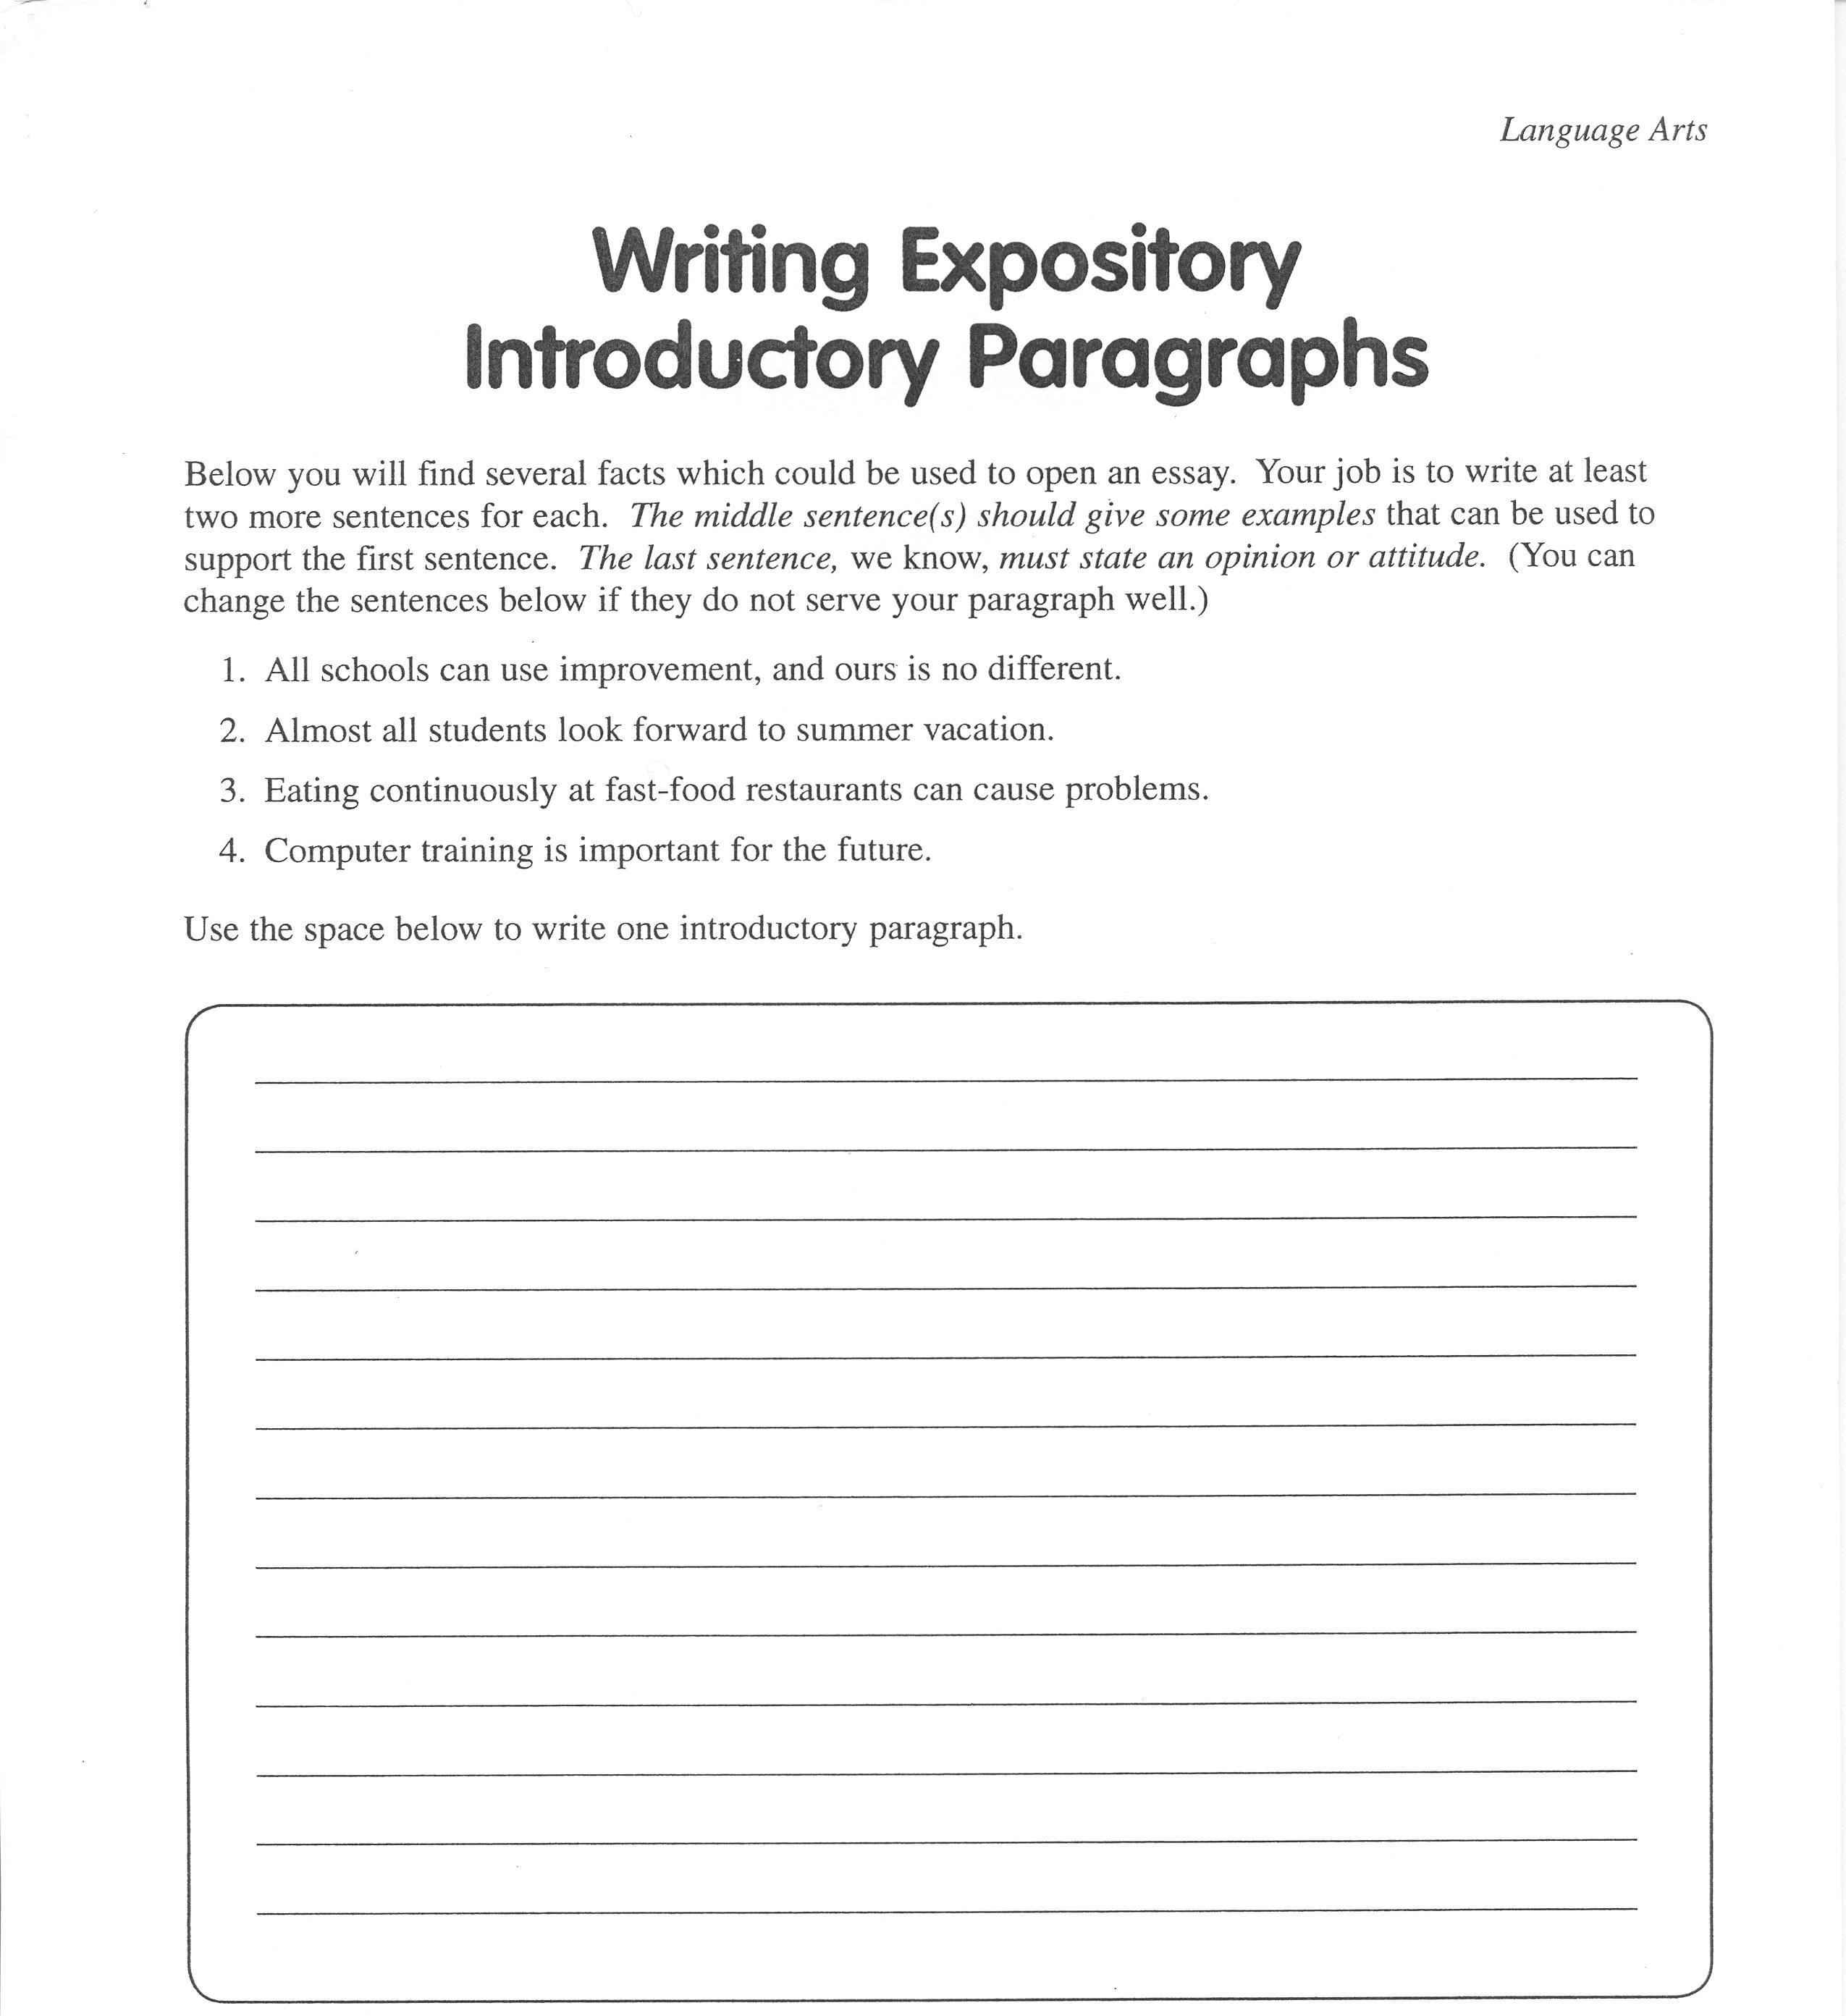 010 Writing20expository20introductory20paragraphs Intro Paragraph Essay Outstanding Example Introductory Expository Introduction Argumentative Format Full